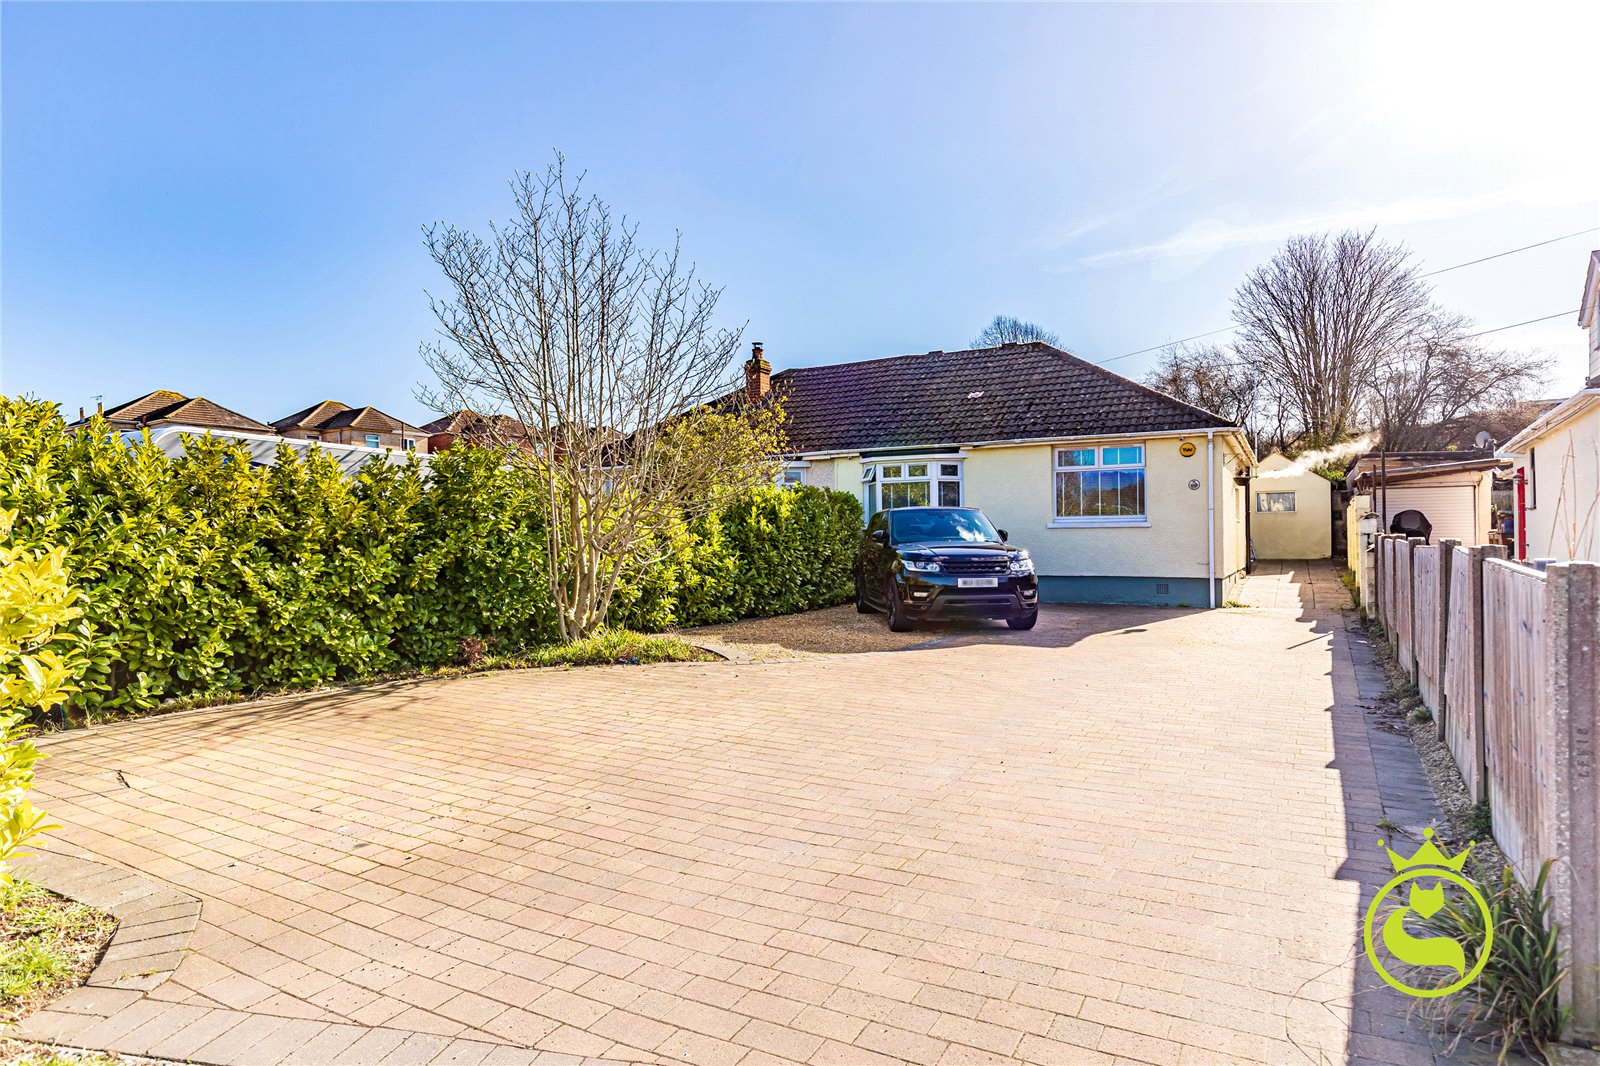 2 bed bungalow for sale in Recreation Road, Branksome, BH12